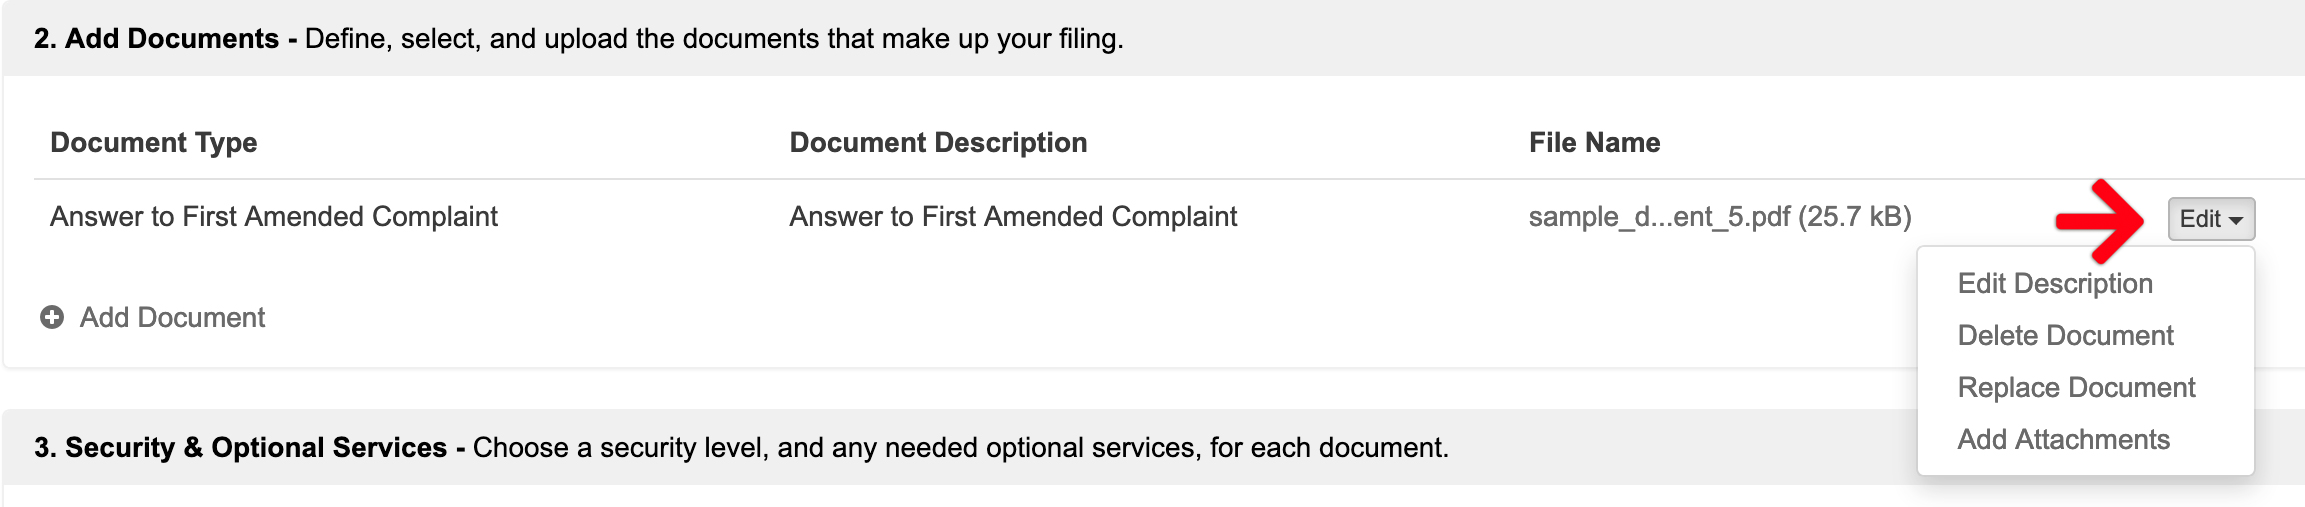 change or delete documents in rejected filings